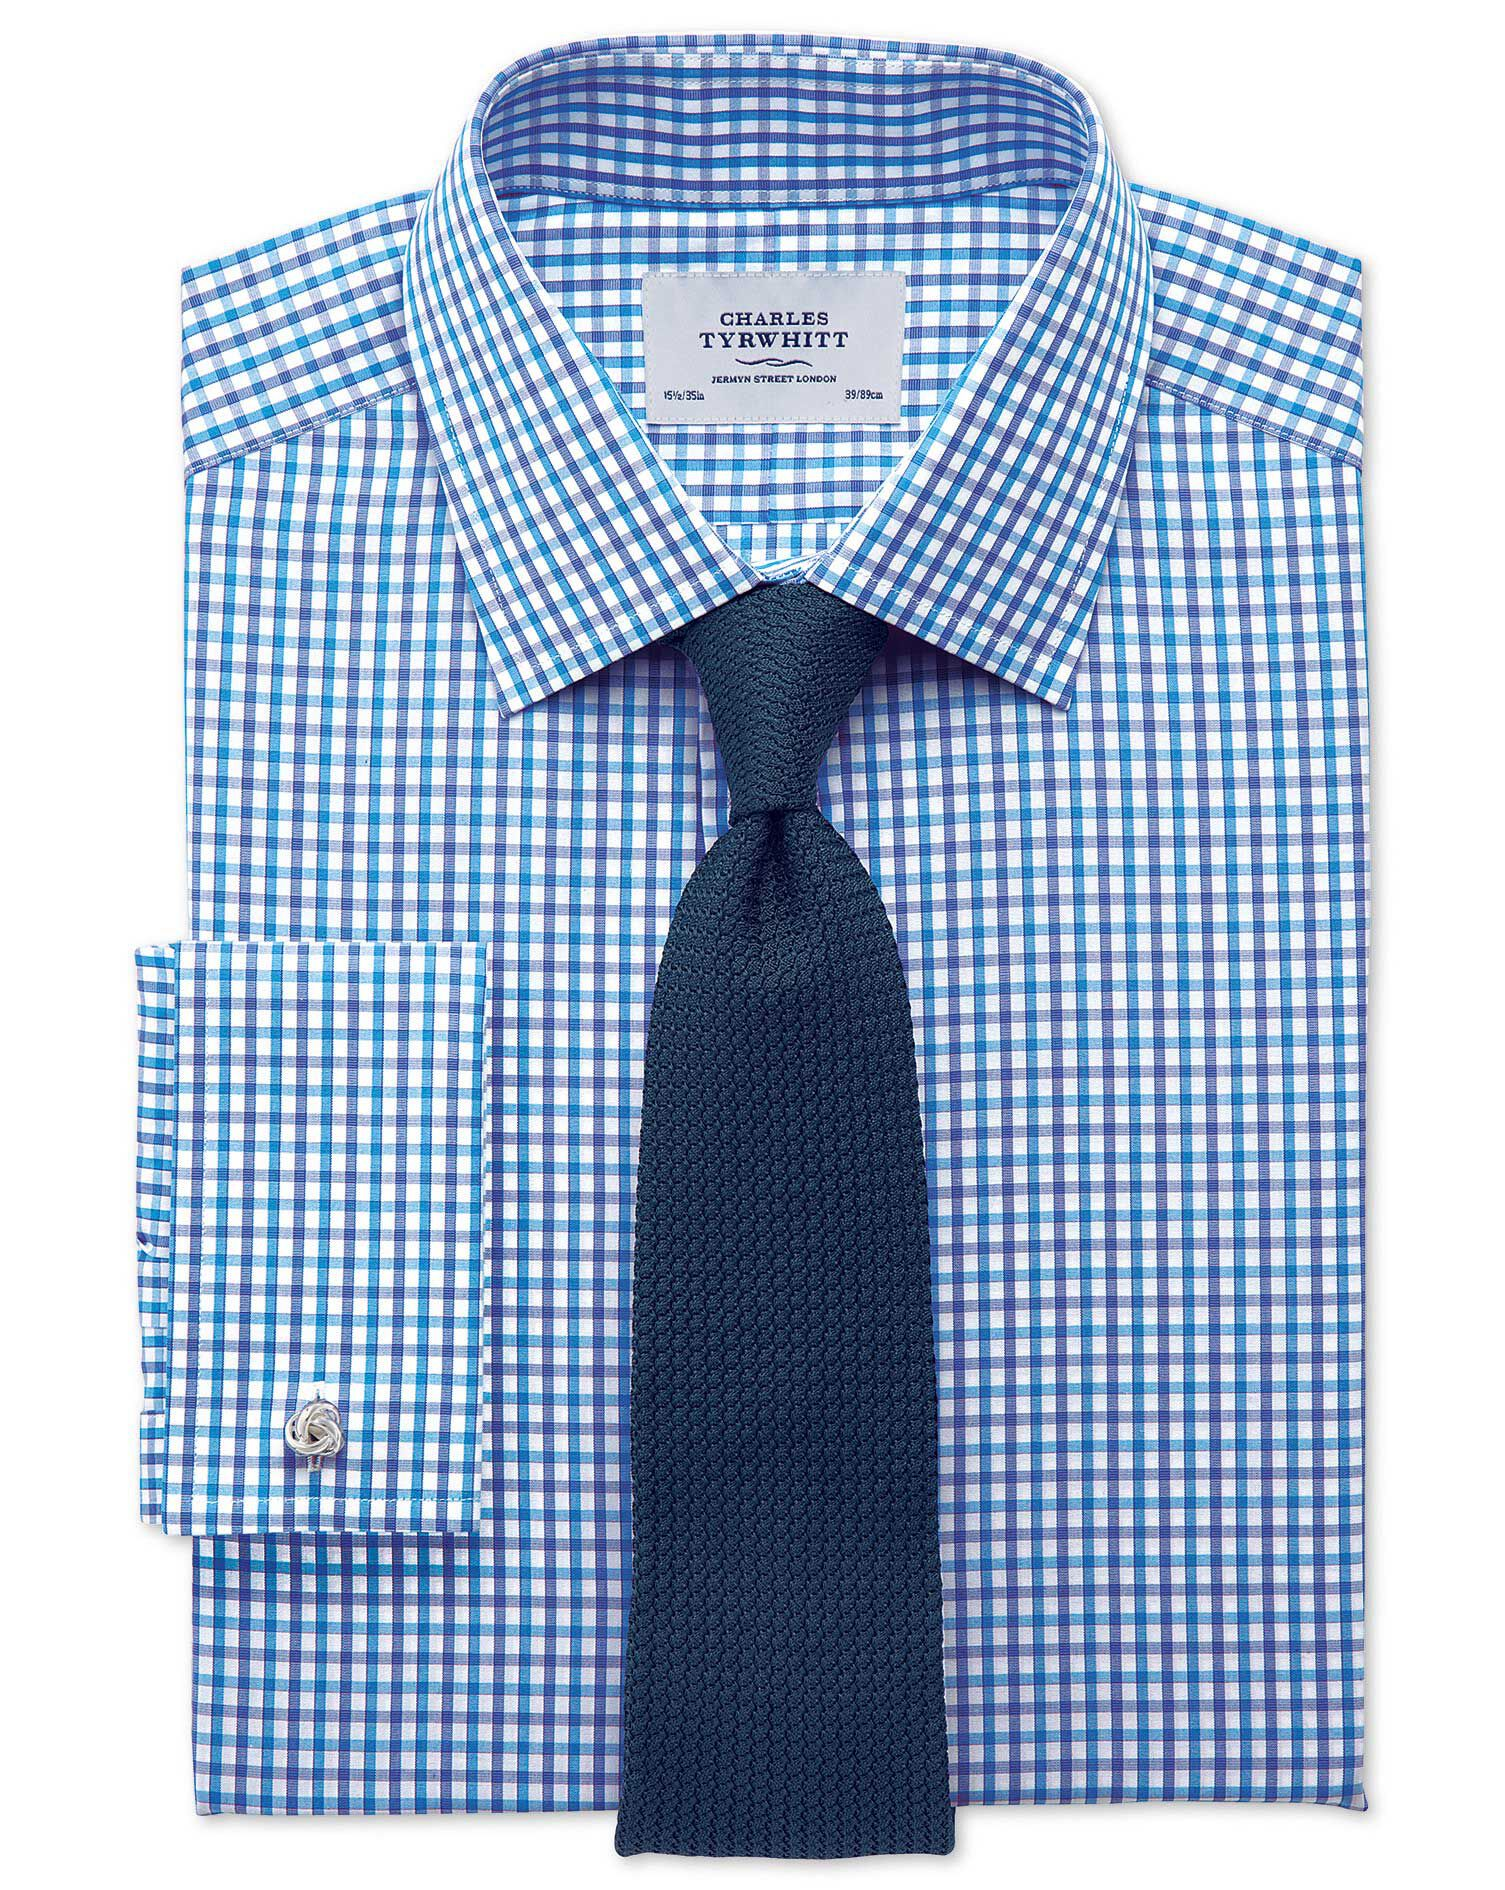 Extra Slim Fit Two Colour Check Blue Cotton Formal Shirt Single Cuff Size 17/37 by Charles Tyrwhitt